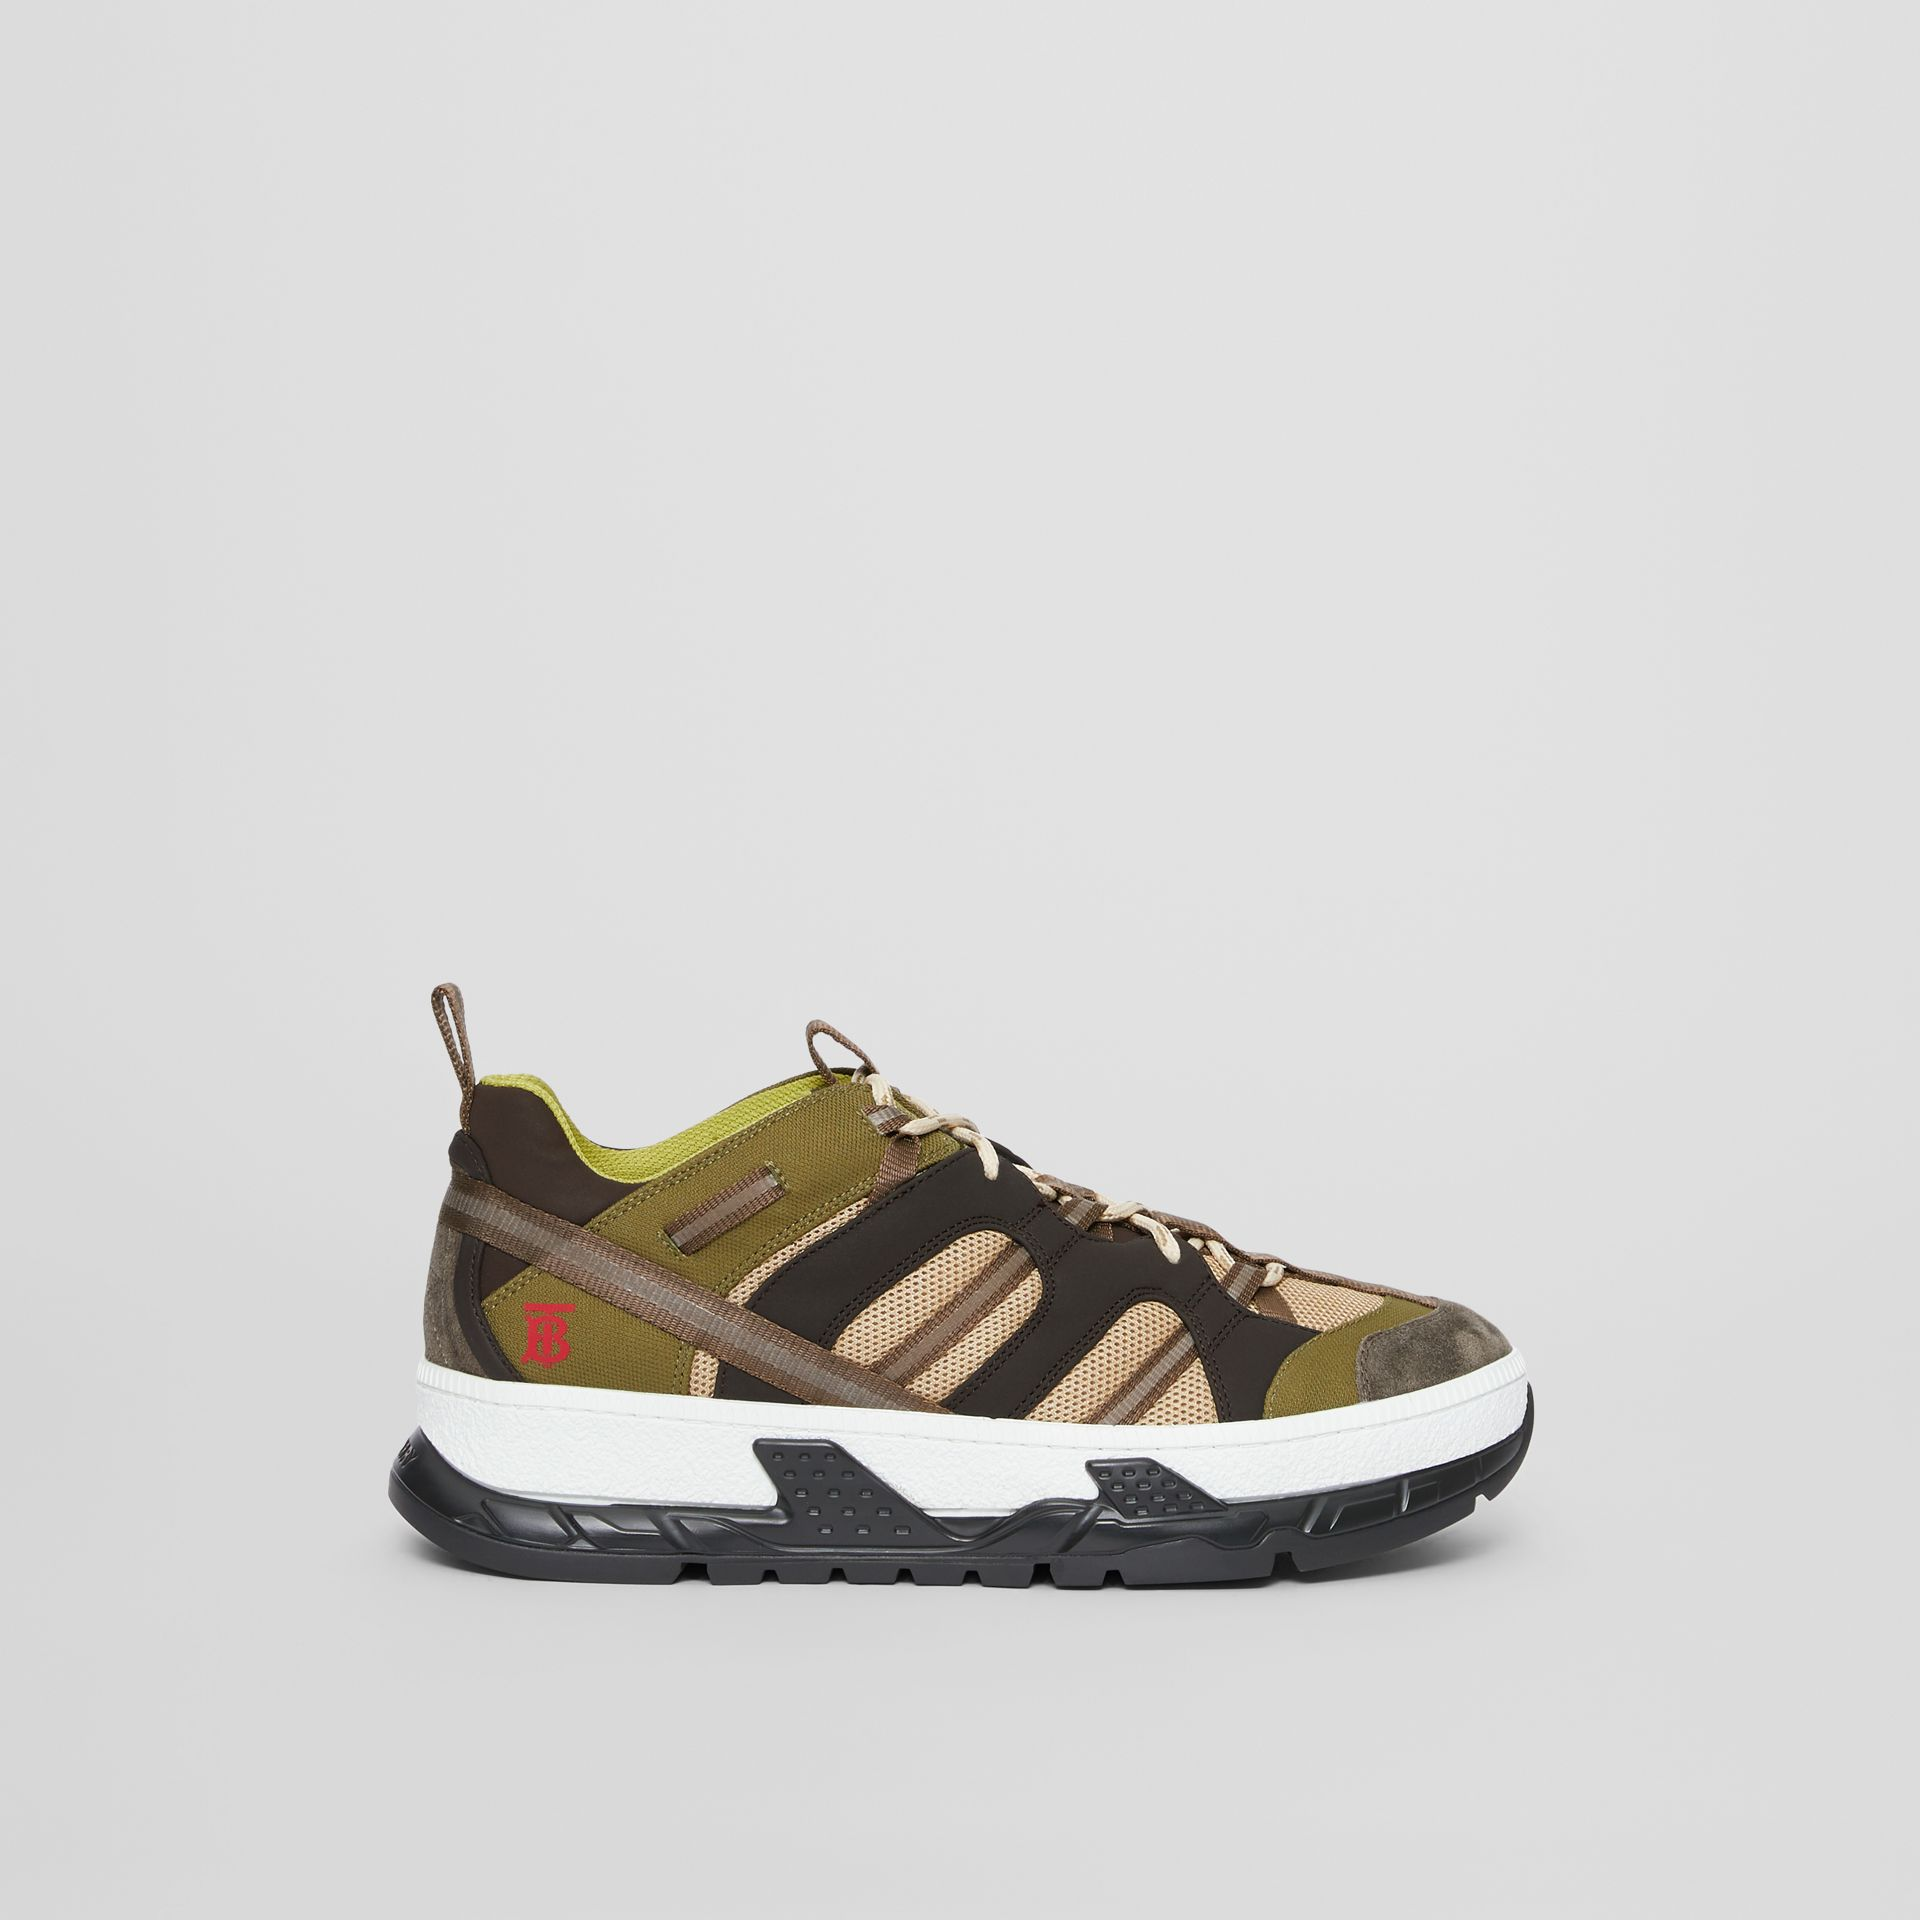 Mesh and Suede Union Sneakers in Khaki / Brown - Men | Burberry United States - gallery image 4